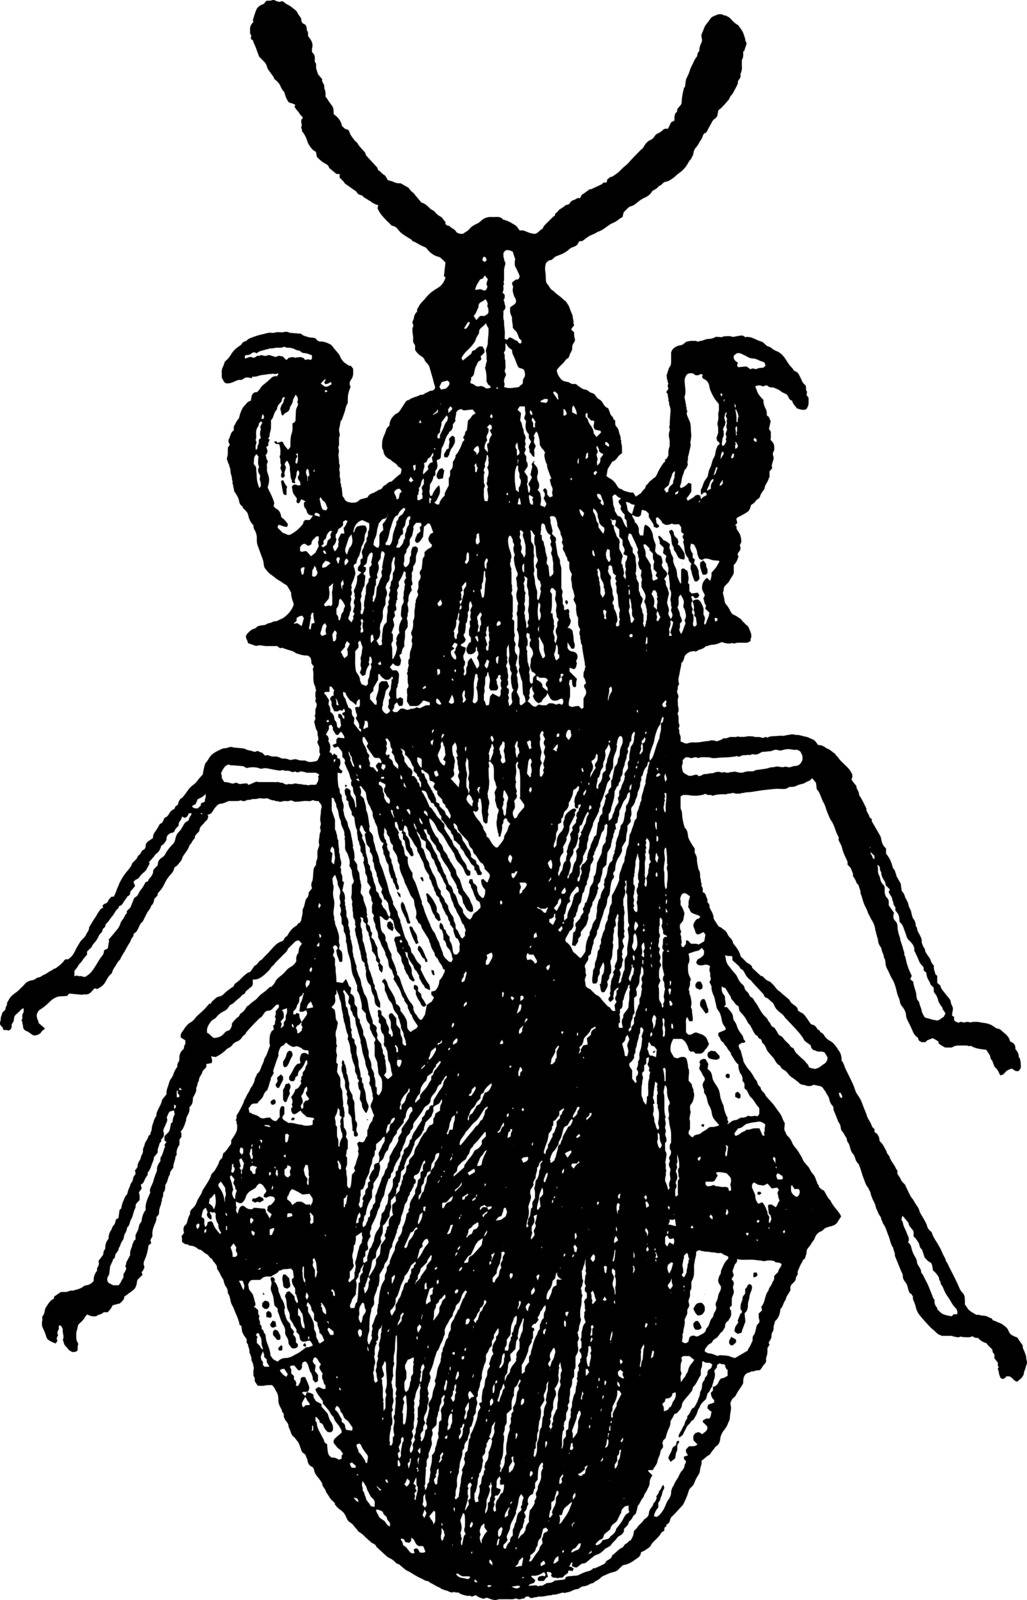 Jagged Ambush Bug after their habit of lying in wait for prey, vintage line drawing or engraving illustration.